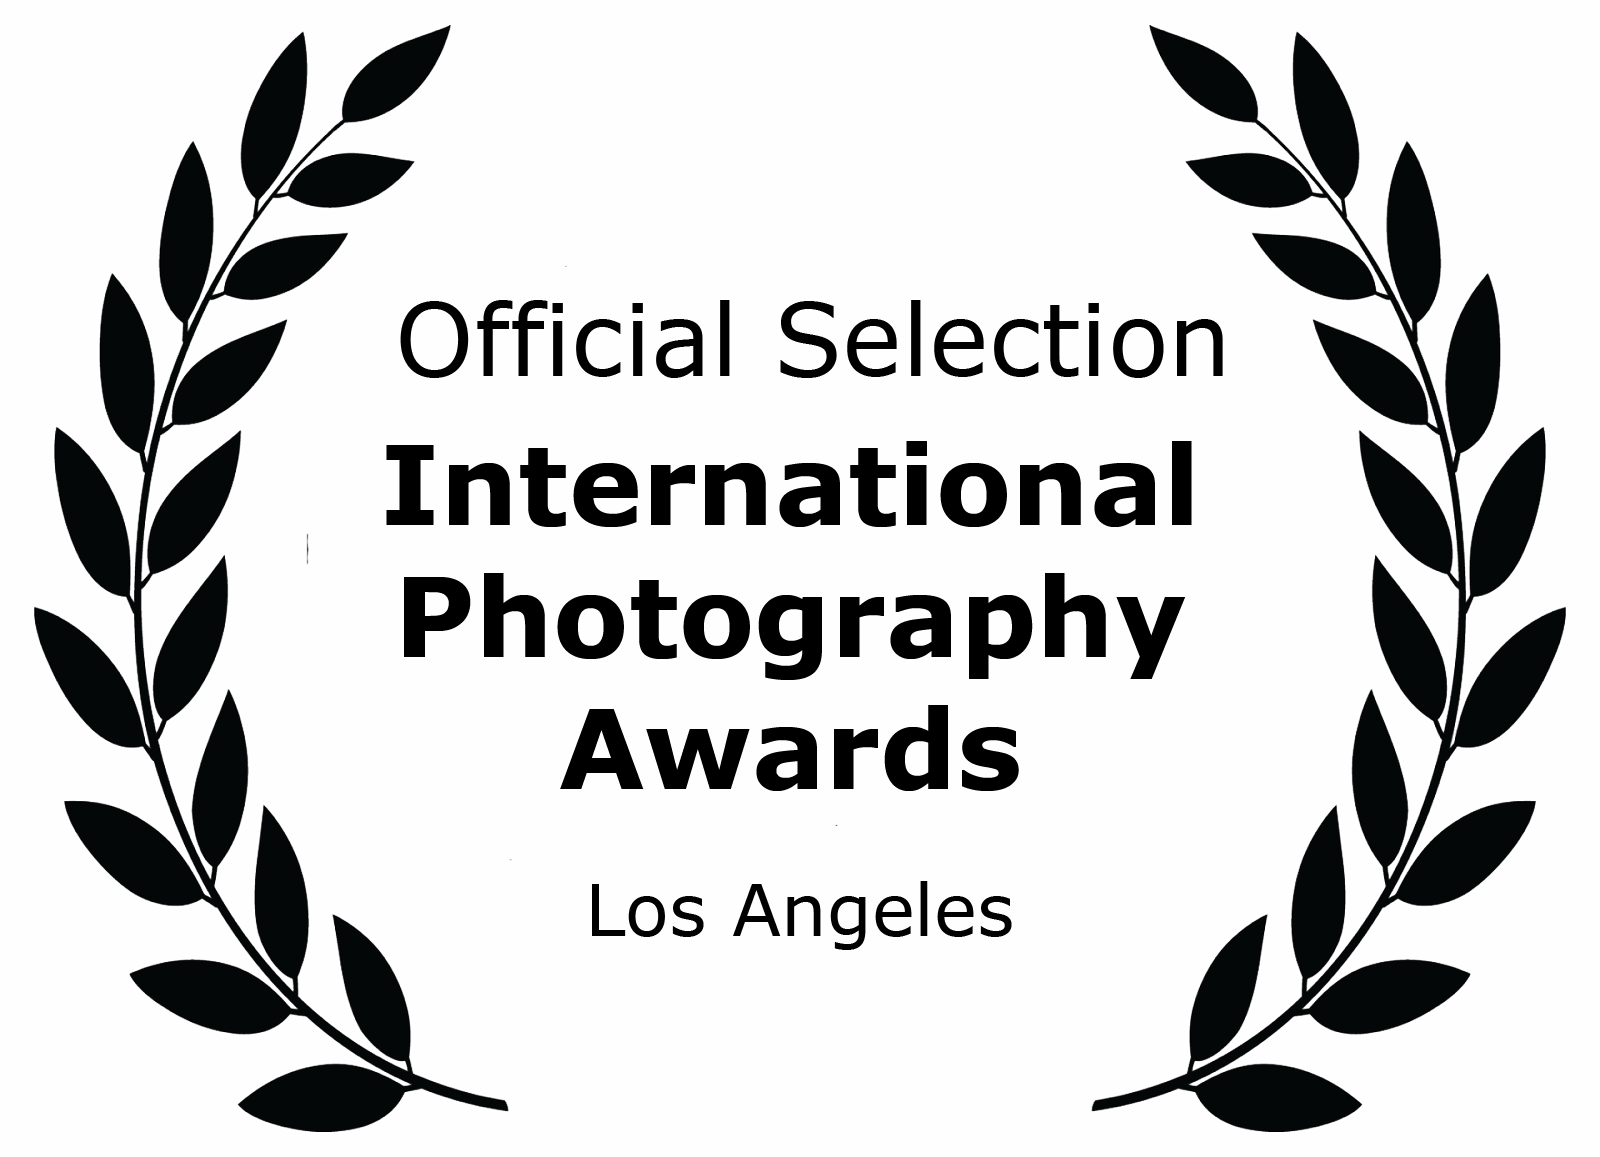 Official Selection International Photography Awards Los Angeles